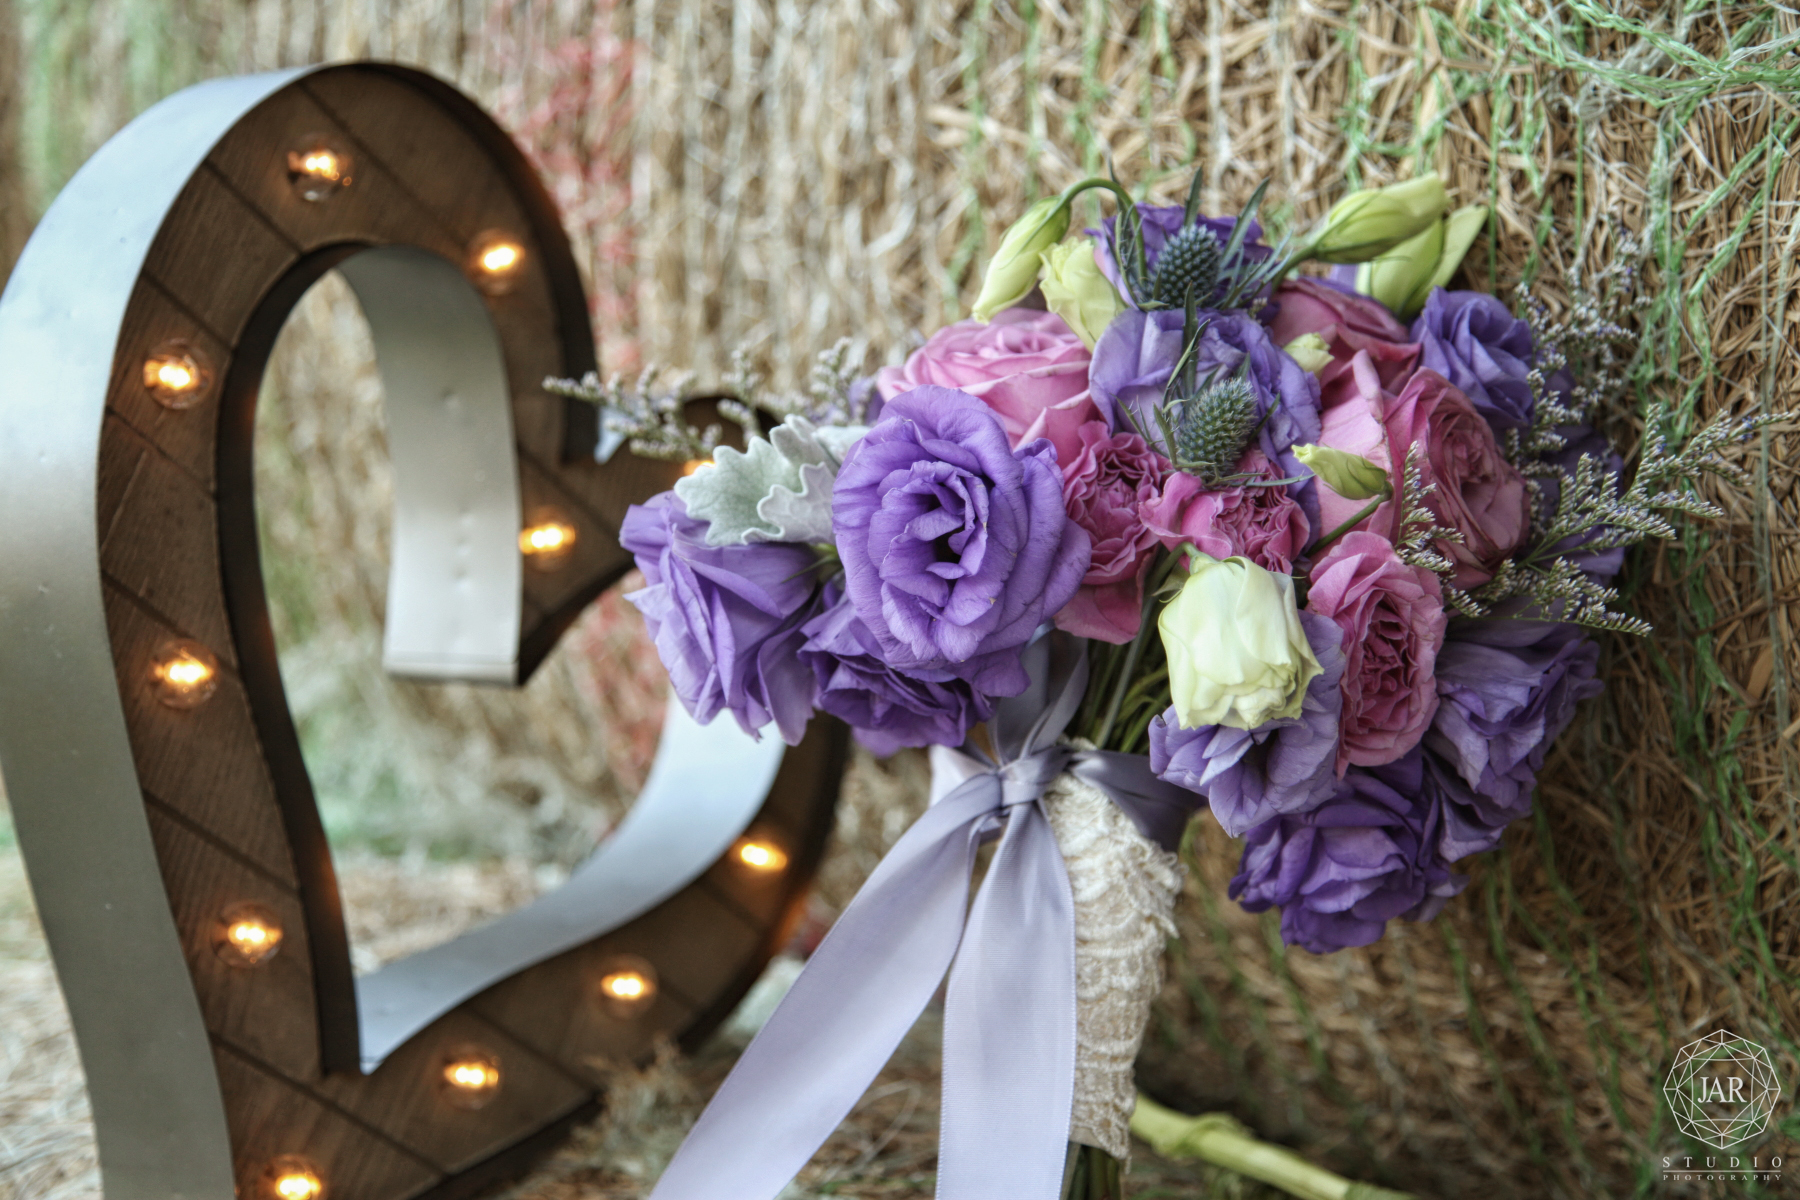 03-rustic-wedding-bouquet-lavender-pink-jarstudio-photography.JPG